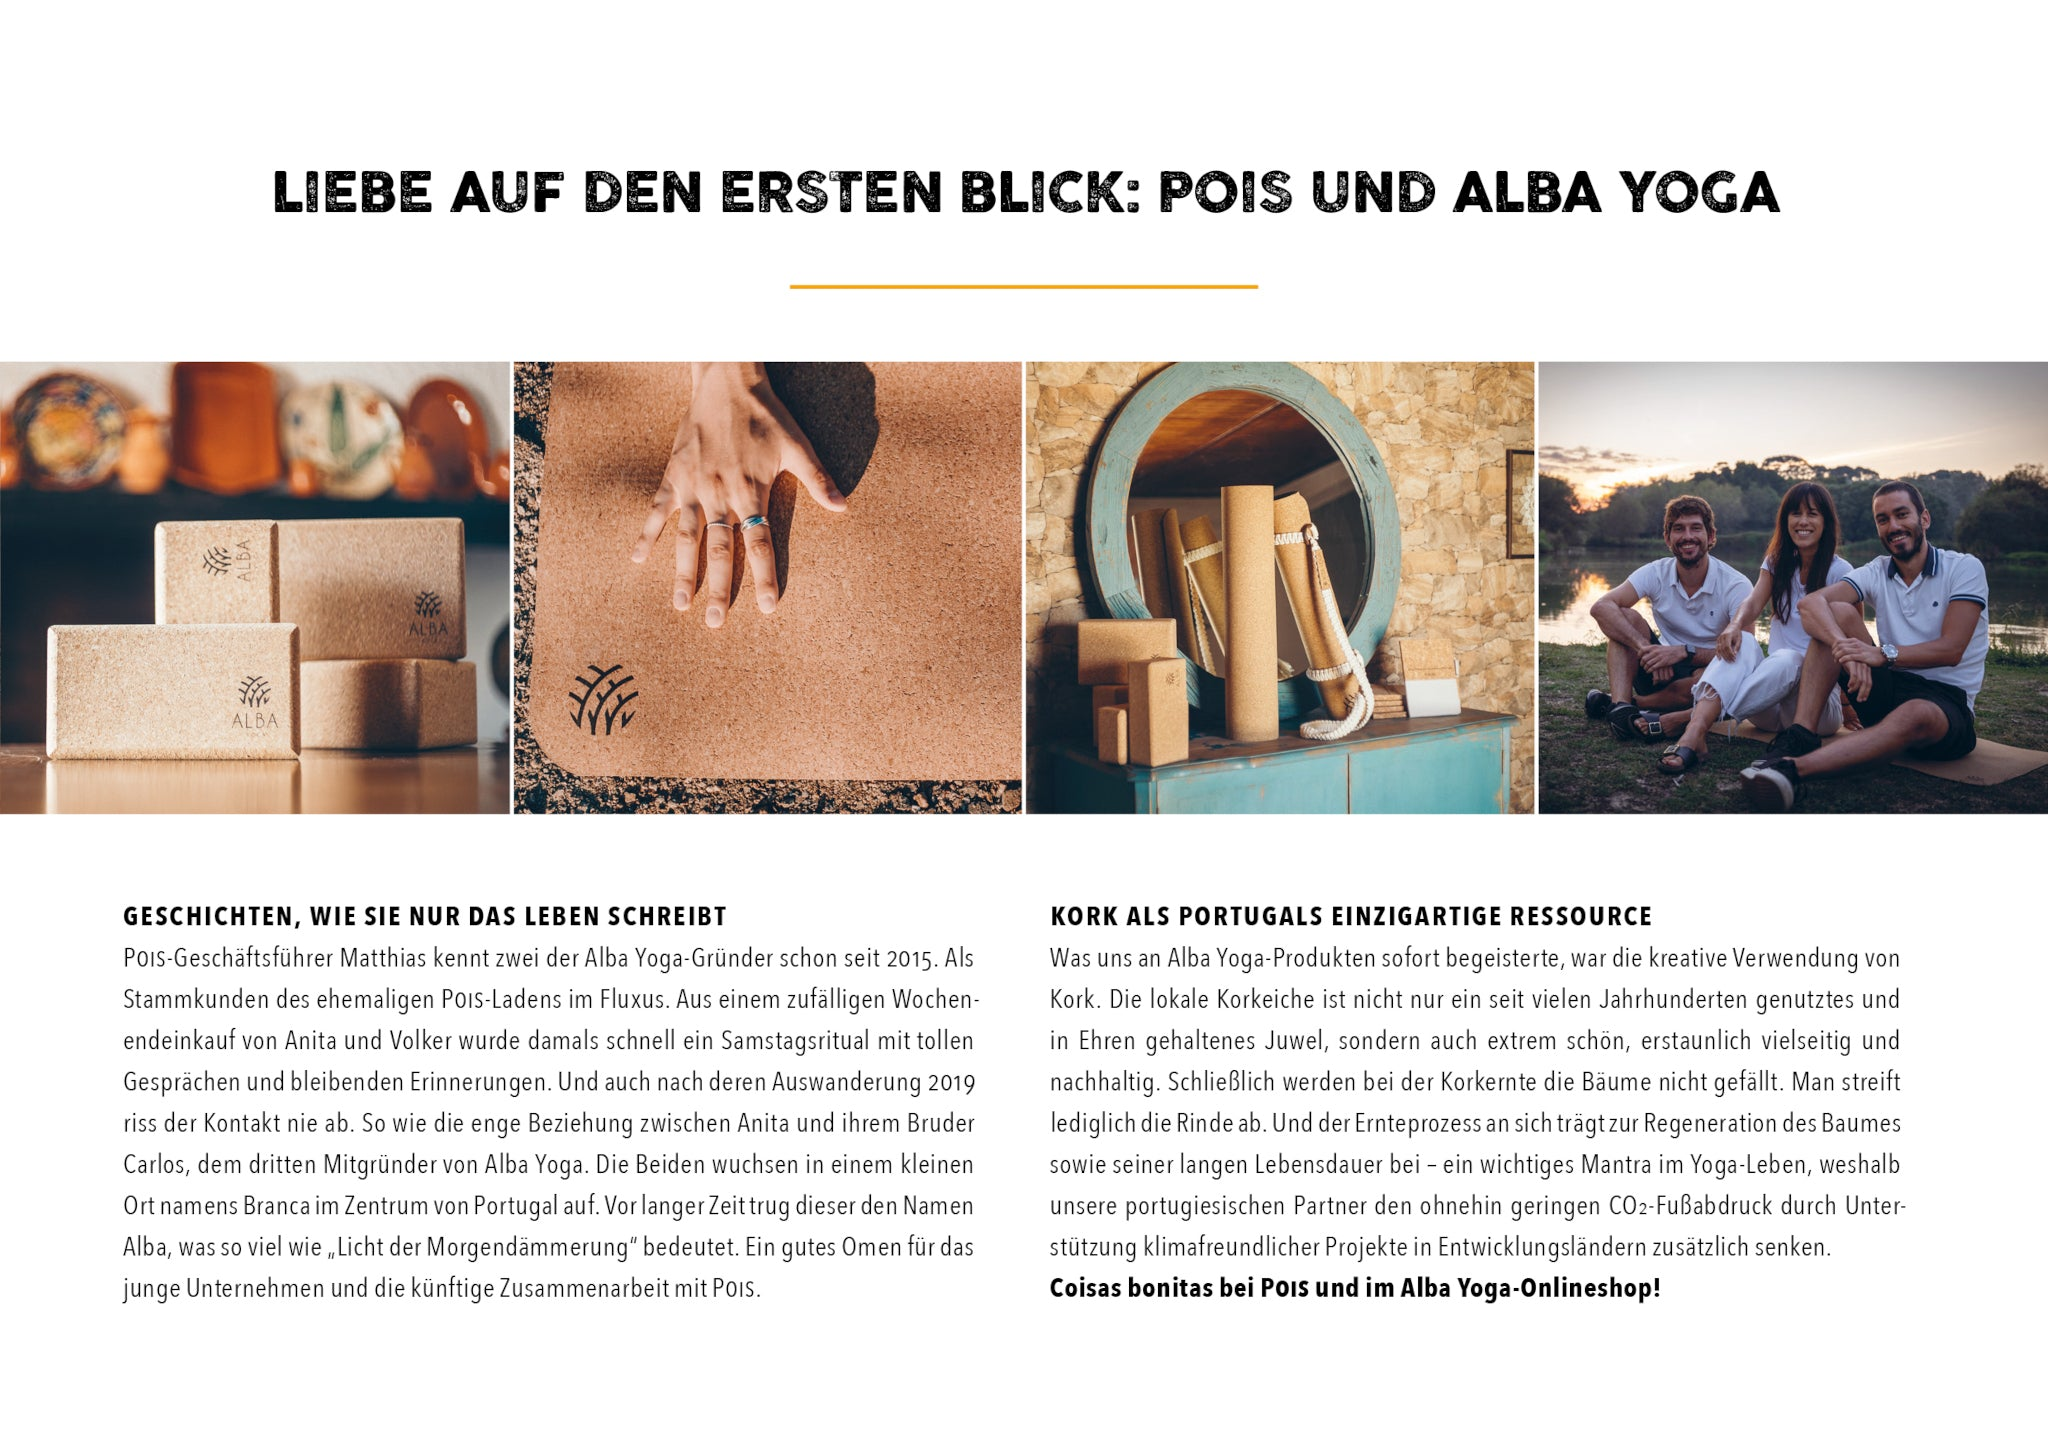 Pois and Alba Yoga flayer with founders